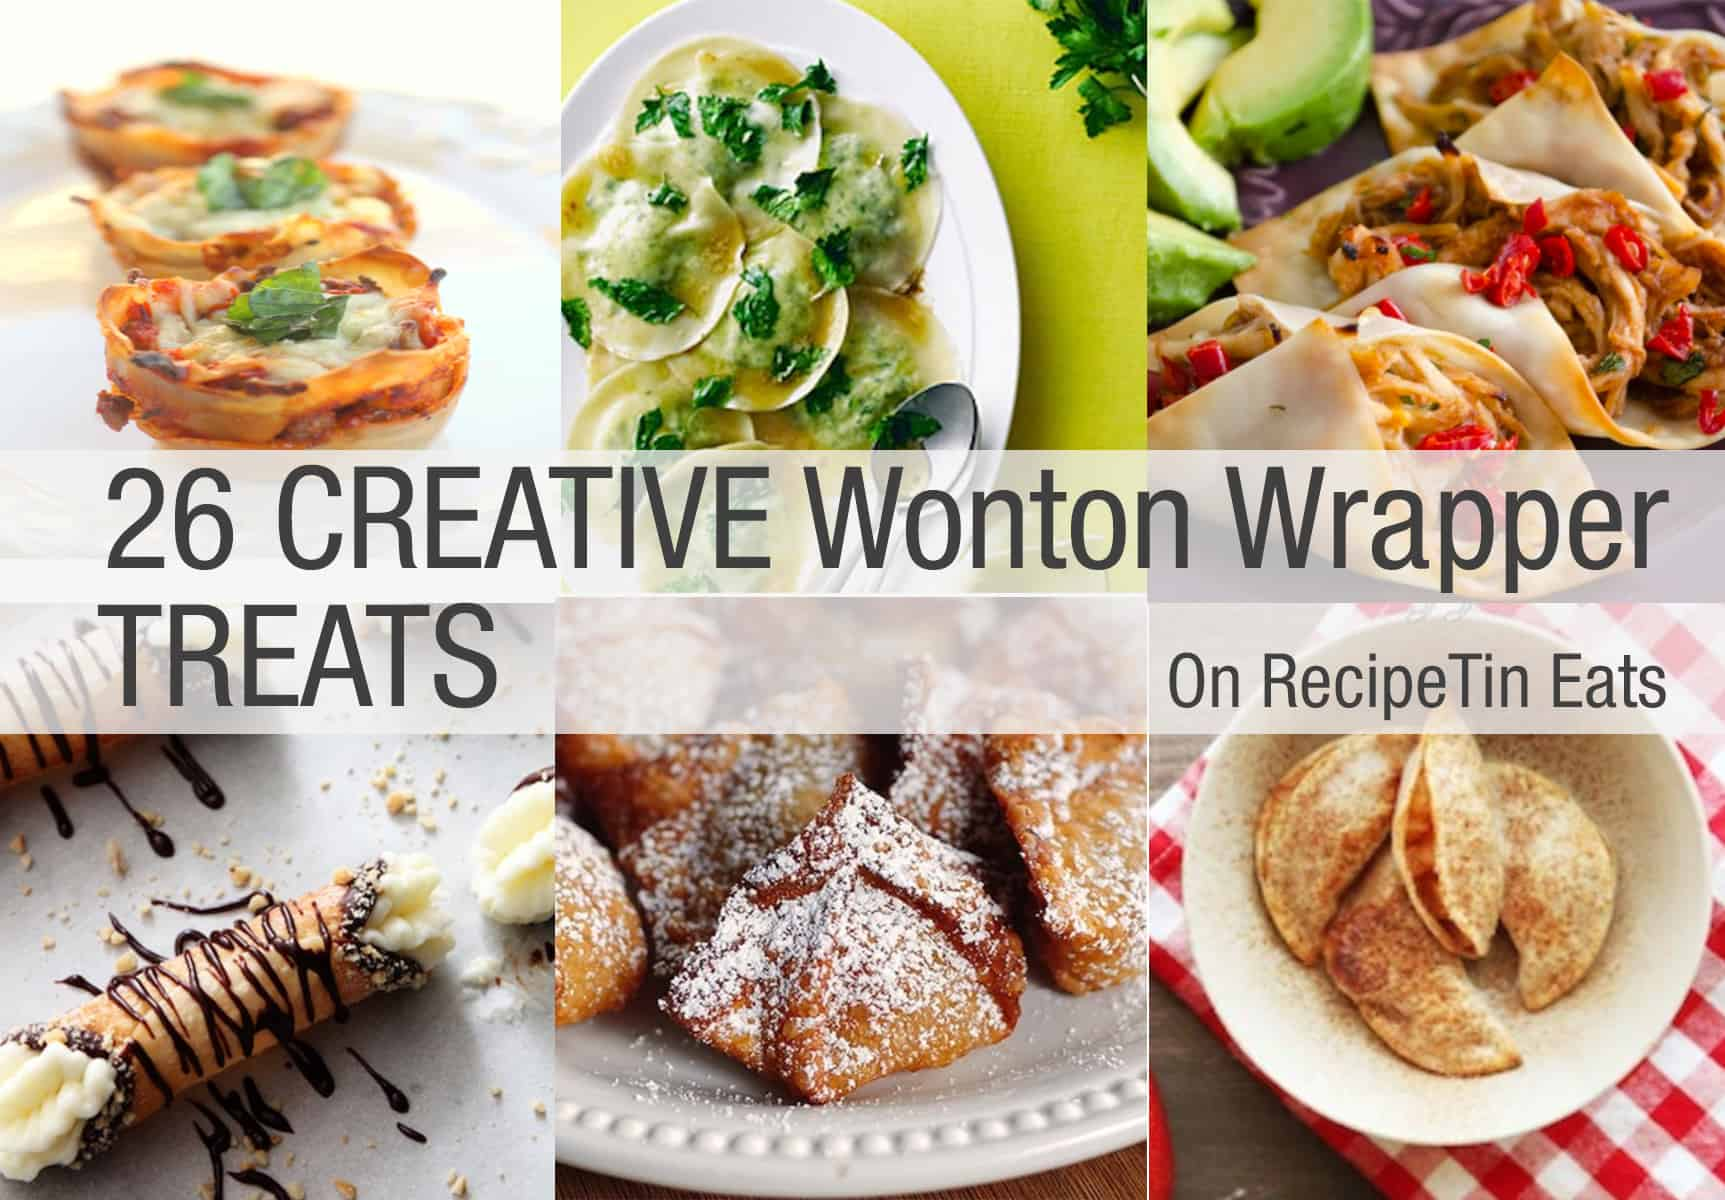 26 Creative Bites Made With Wonton Wrappers Recipetin Eats